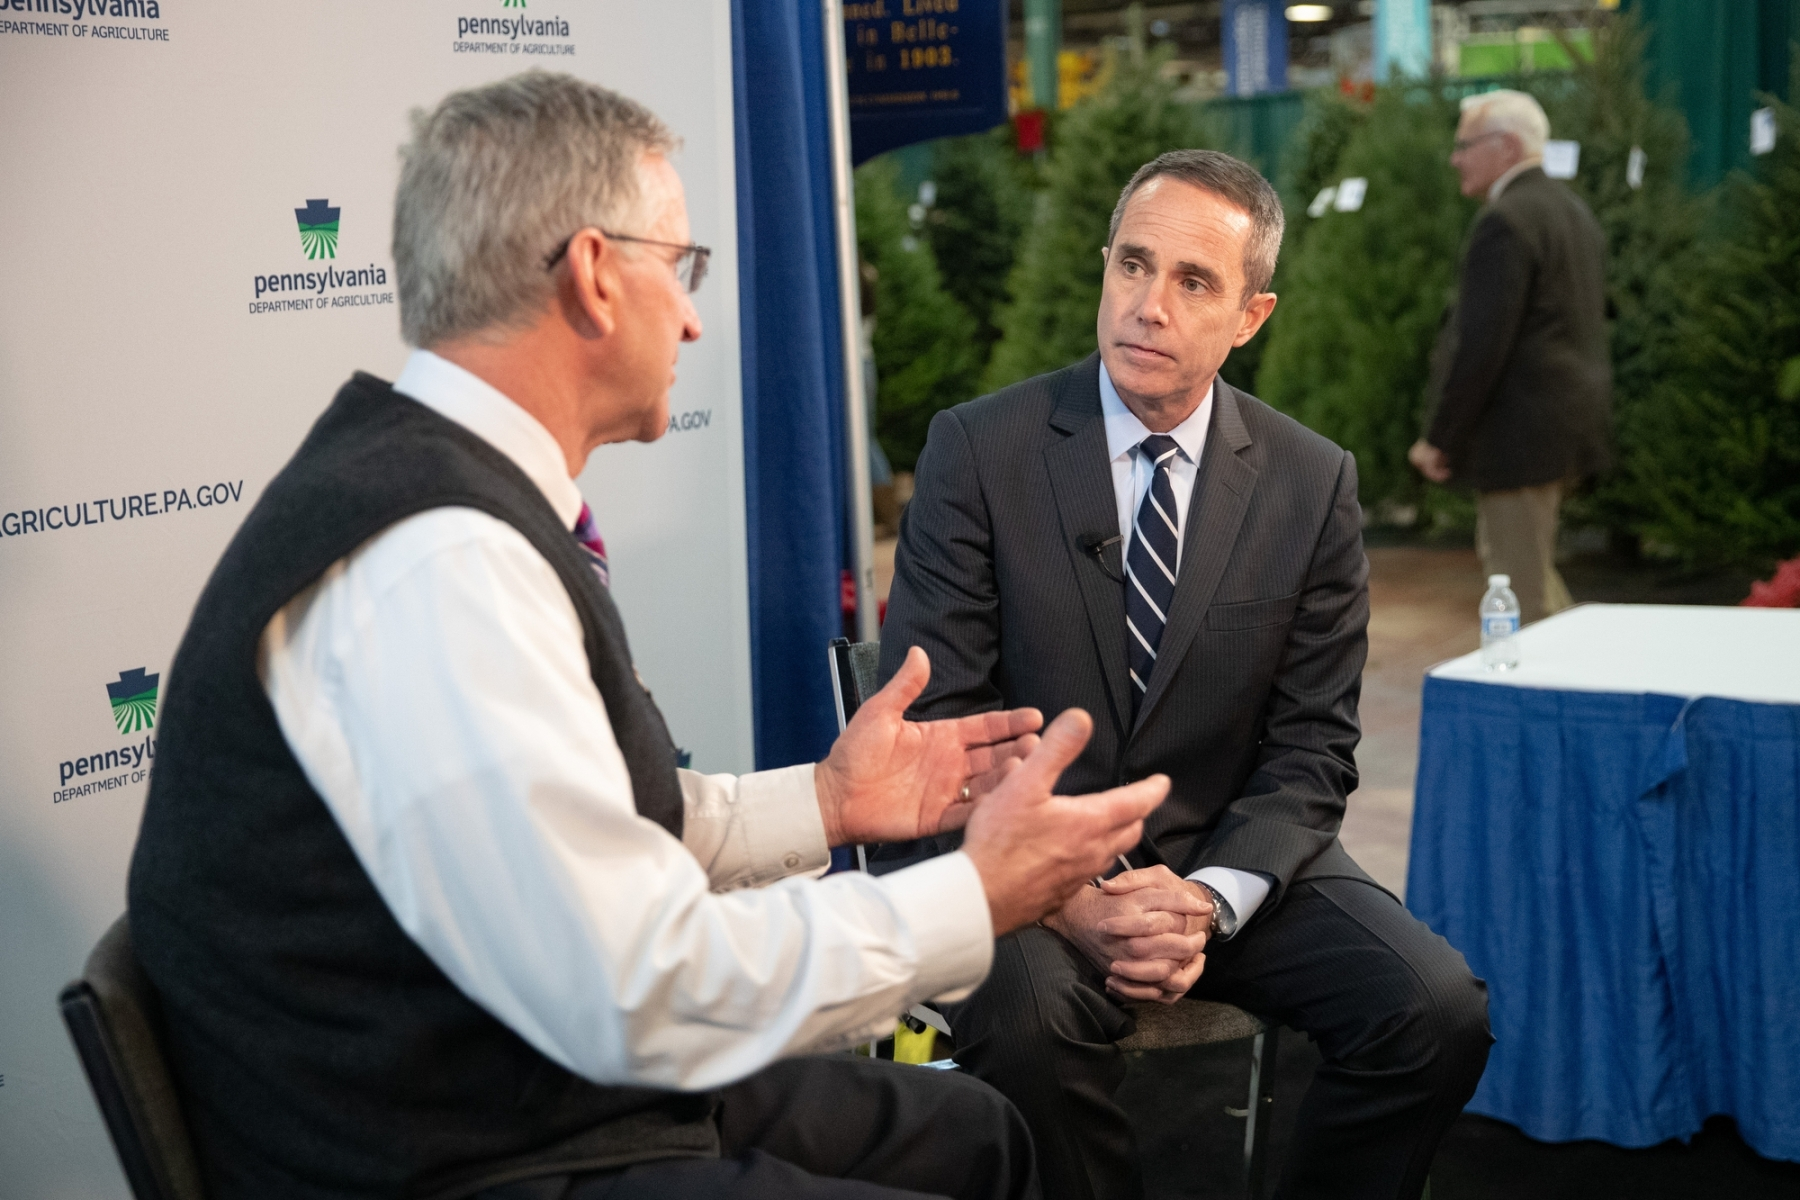 January 9, 2019: Senator Senator Steve Santarsiero attends the 2019 PA Farm Show.